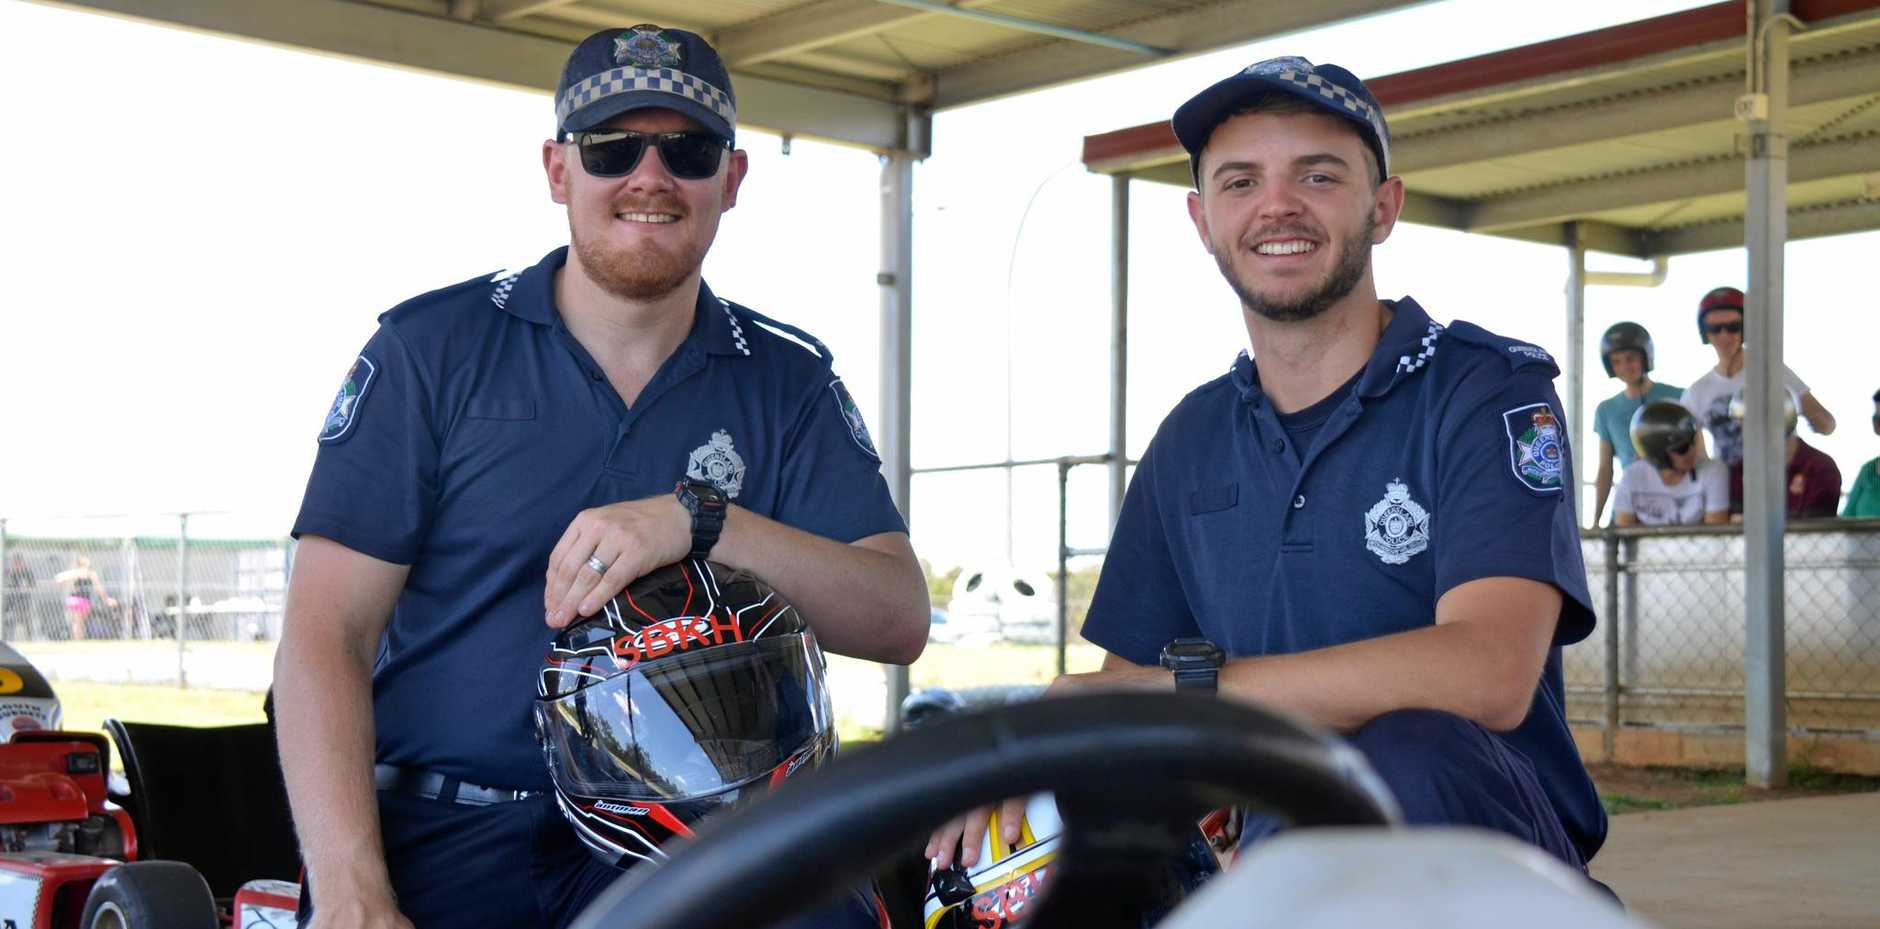 Constable Andrew Kendall and Constable Tyler Roberts came up with the idea for Nanango Police event Take it to the Track, which promoted awareness for road safety. Event on October 29, 2016.